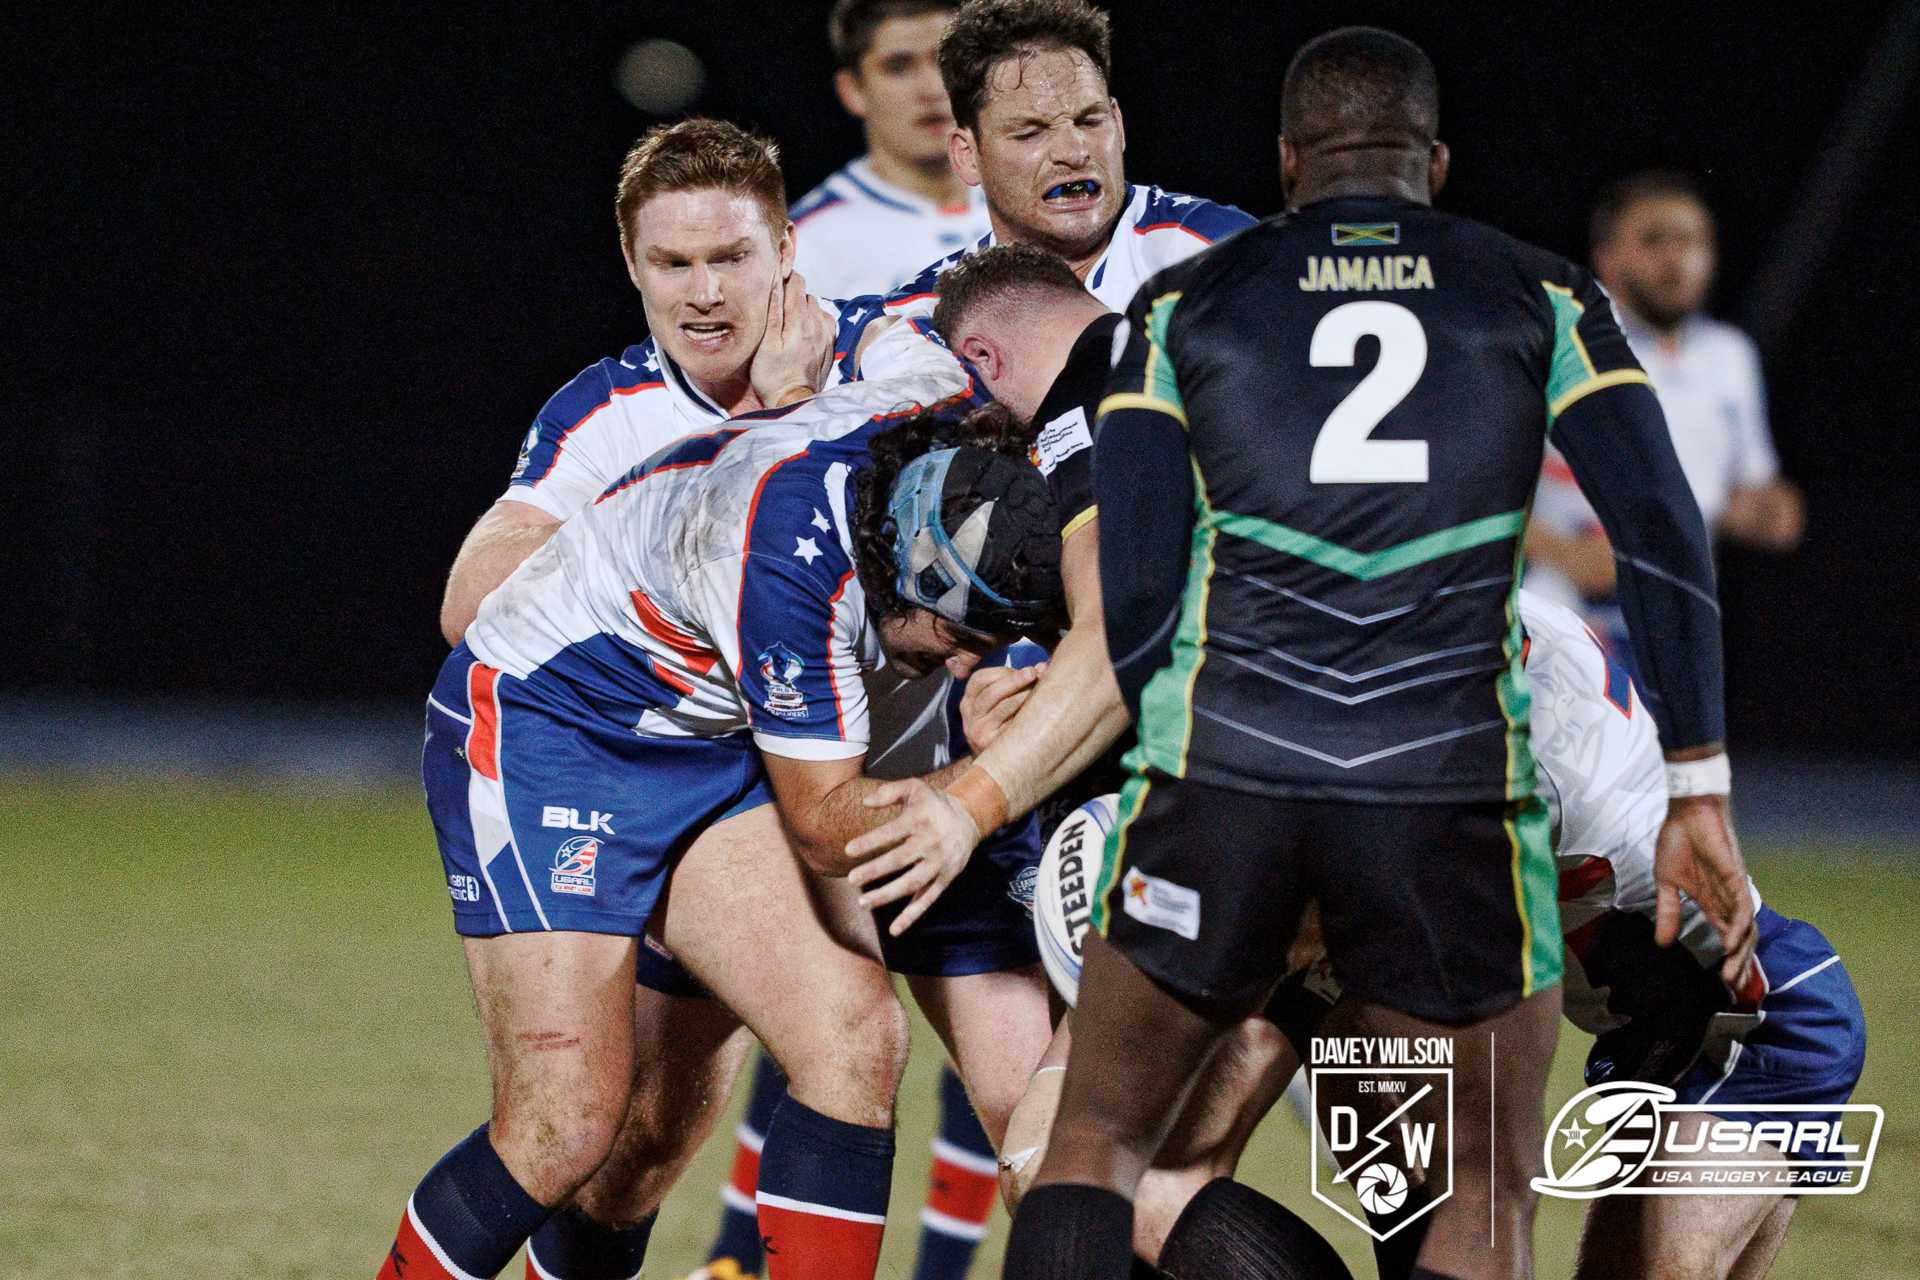 USA Hawks rugby team competes at Hodges Stadium, beats Jamaica 20-14